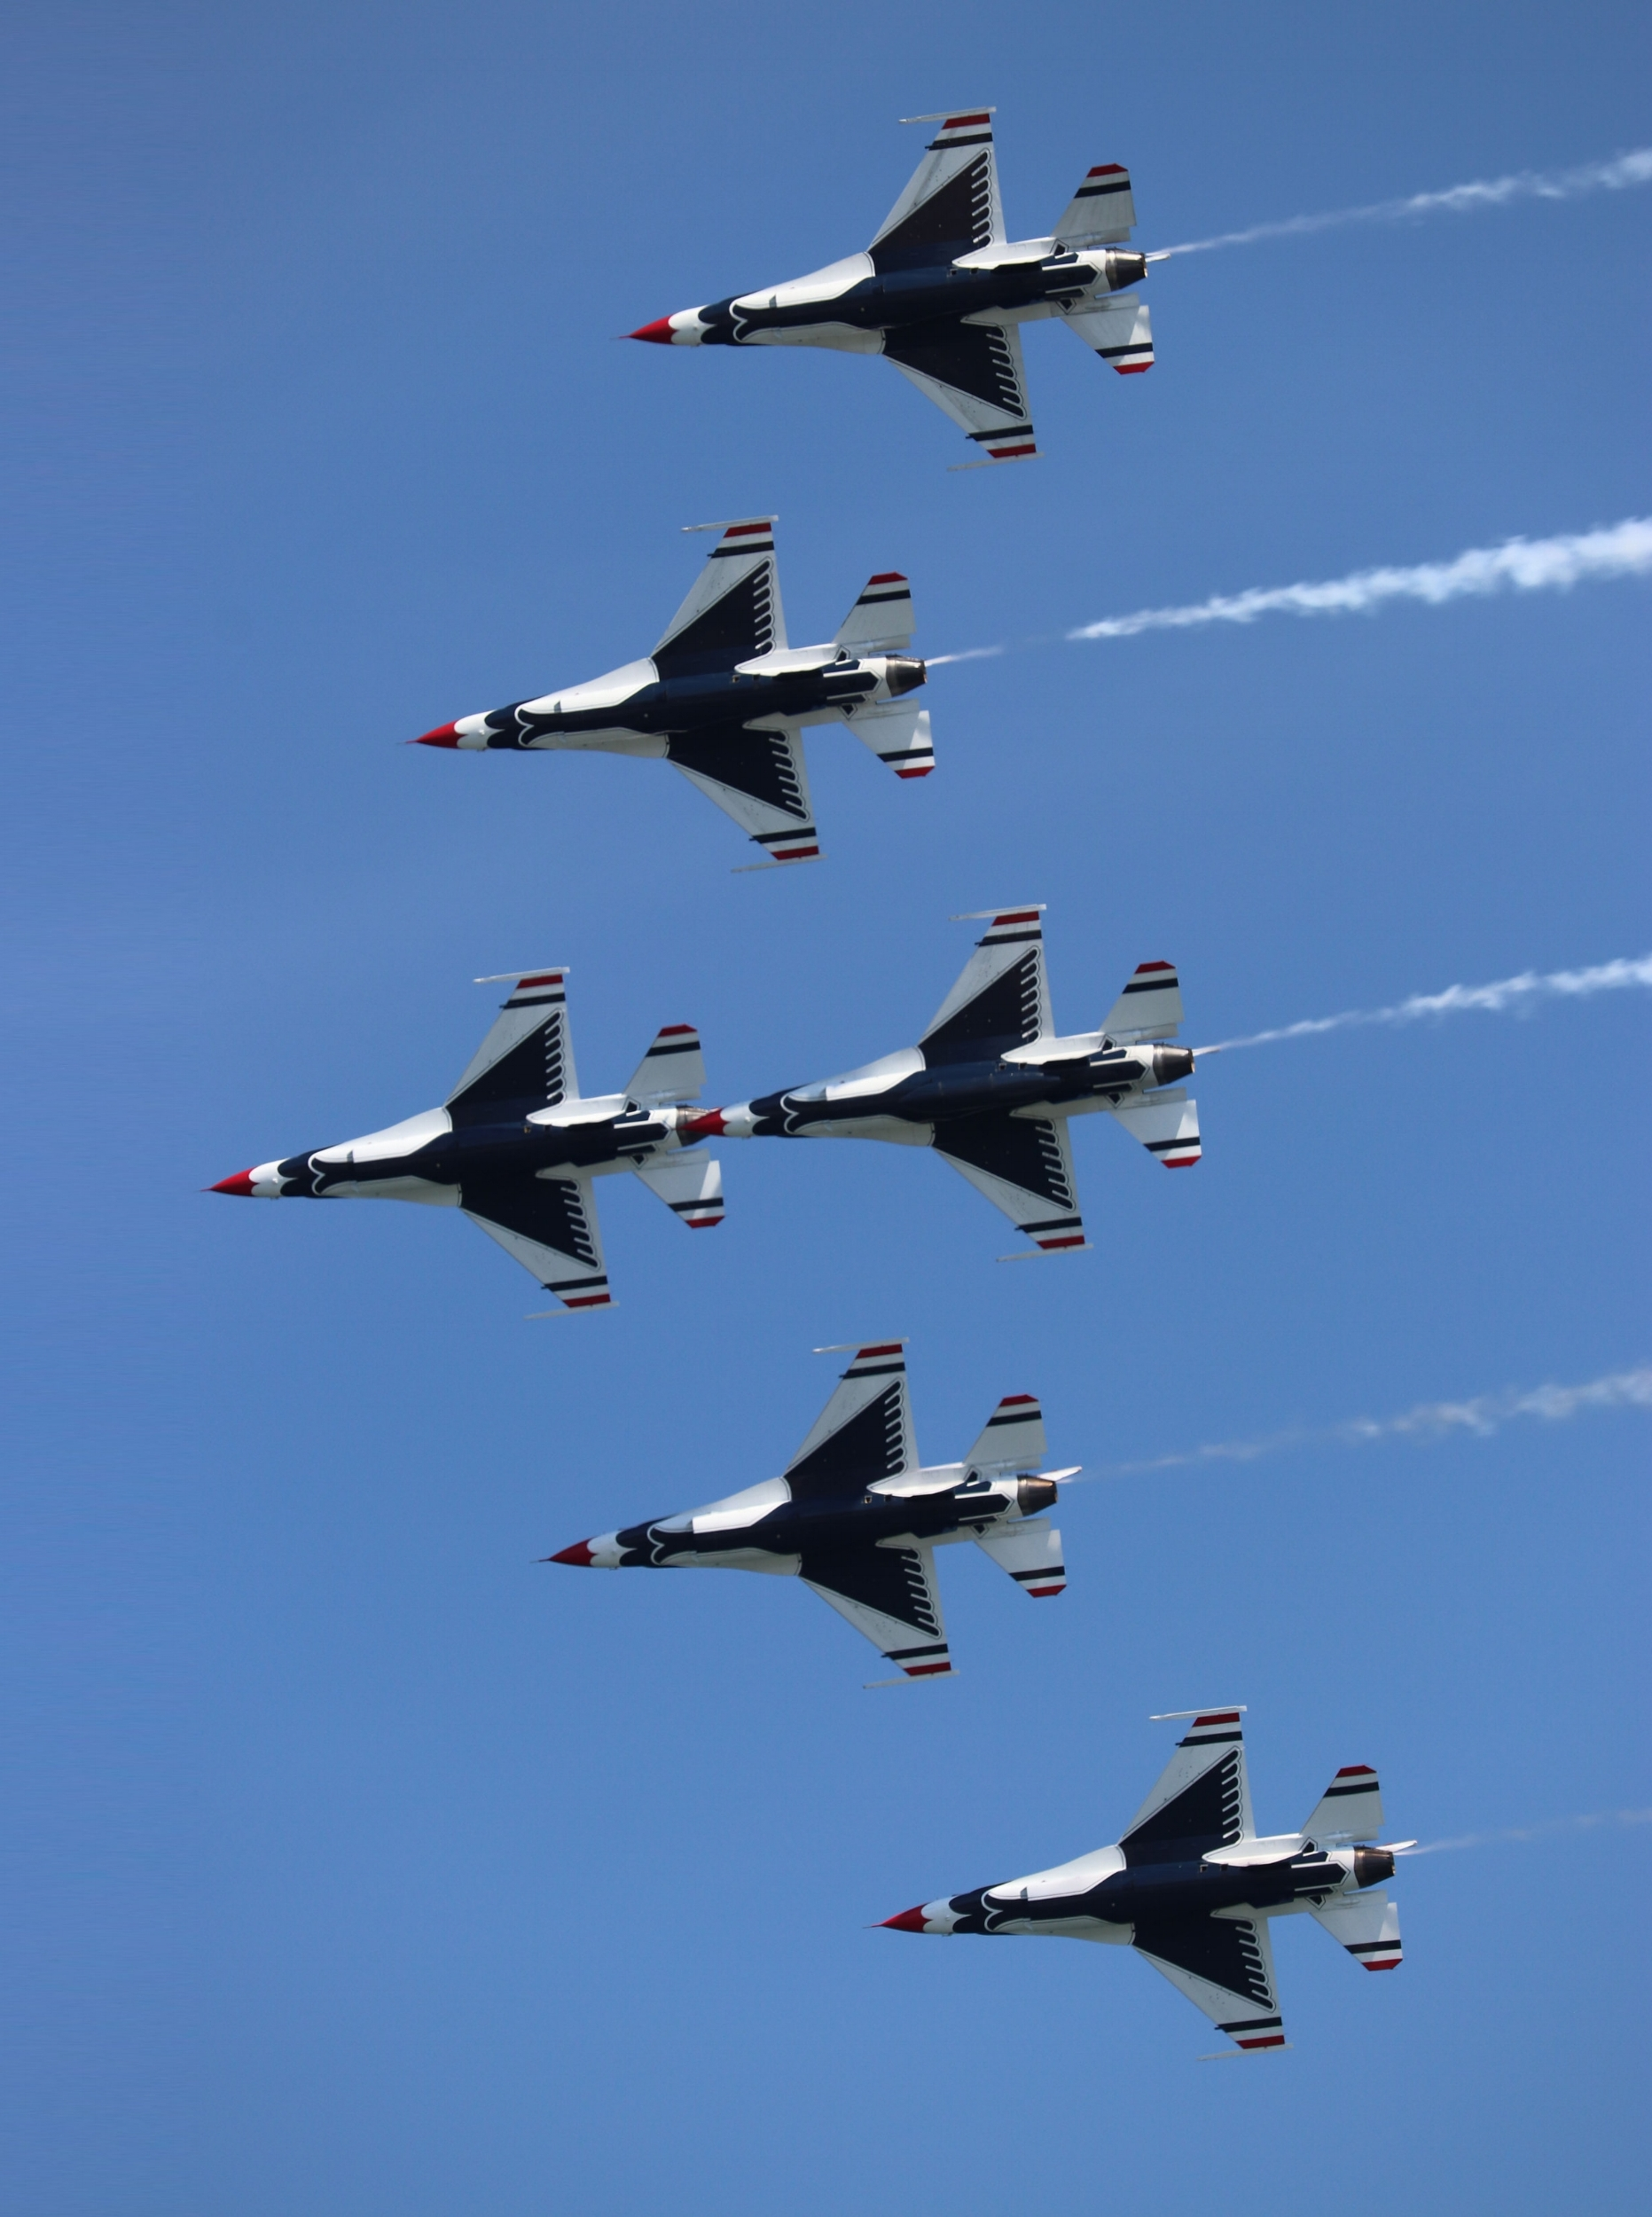 The Thunderbirds in formation.